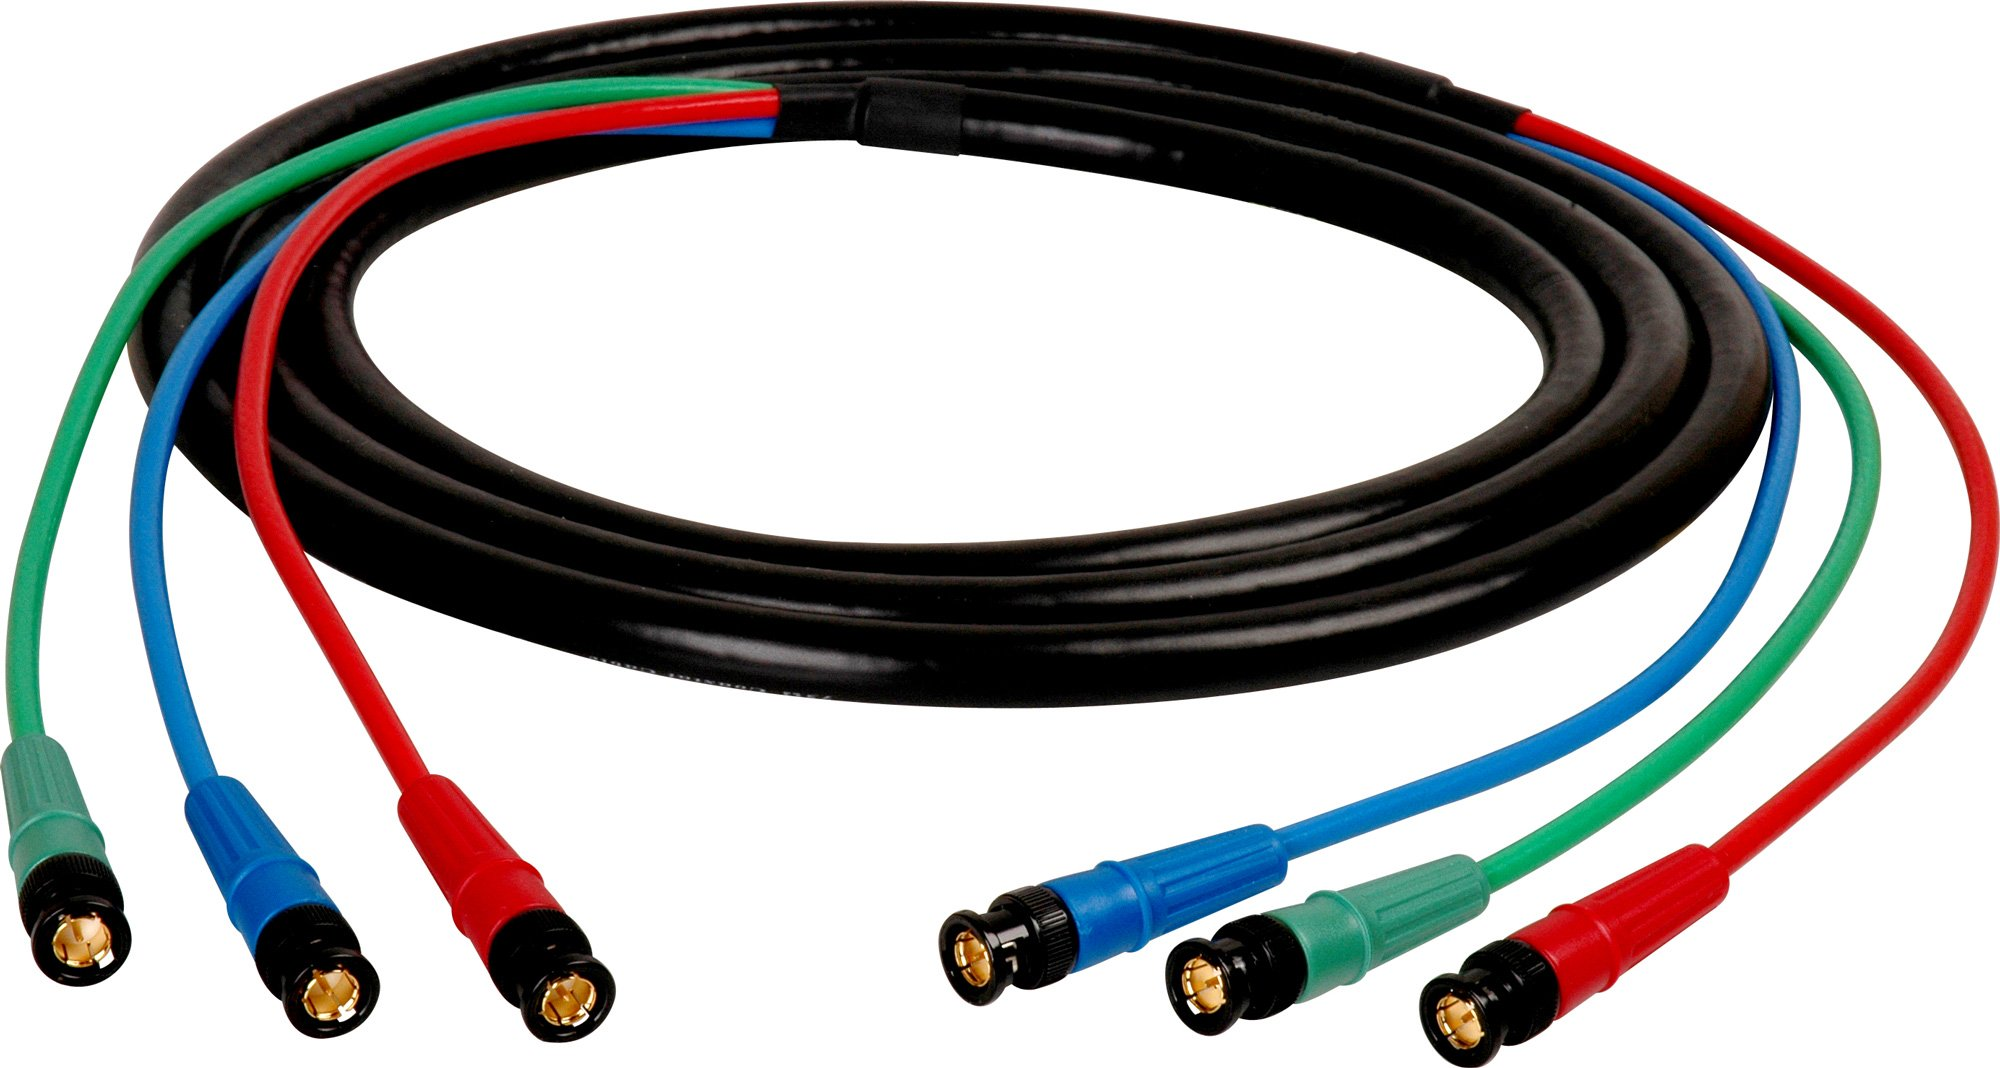 3-4-5 Component Video Cables